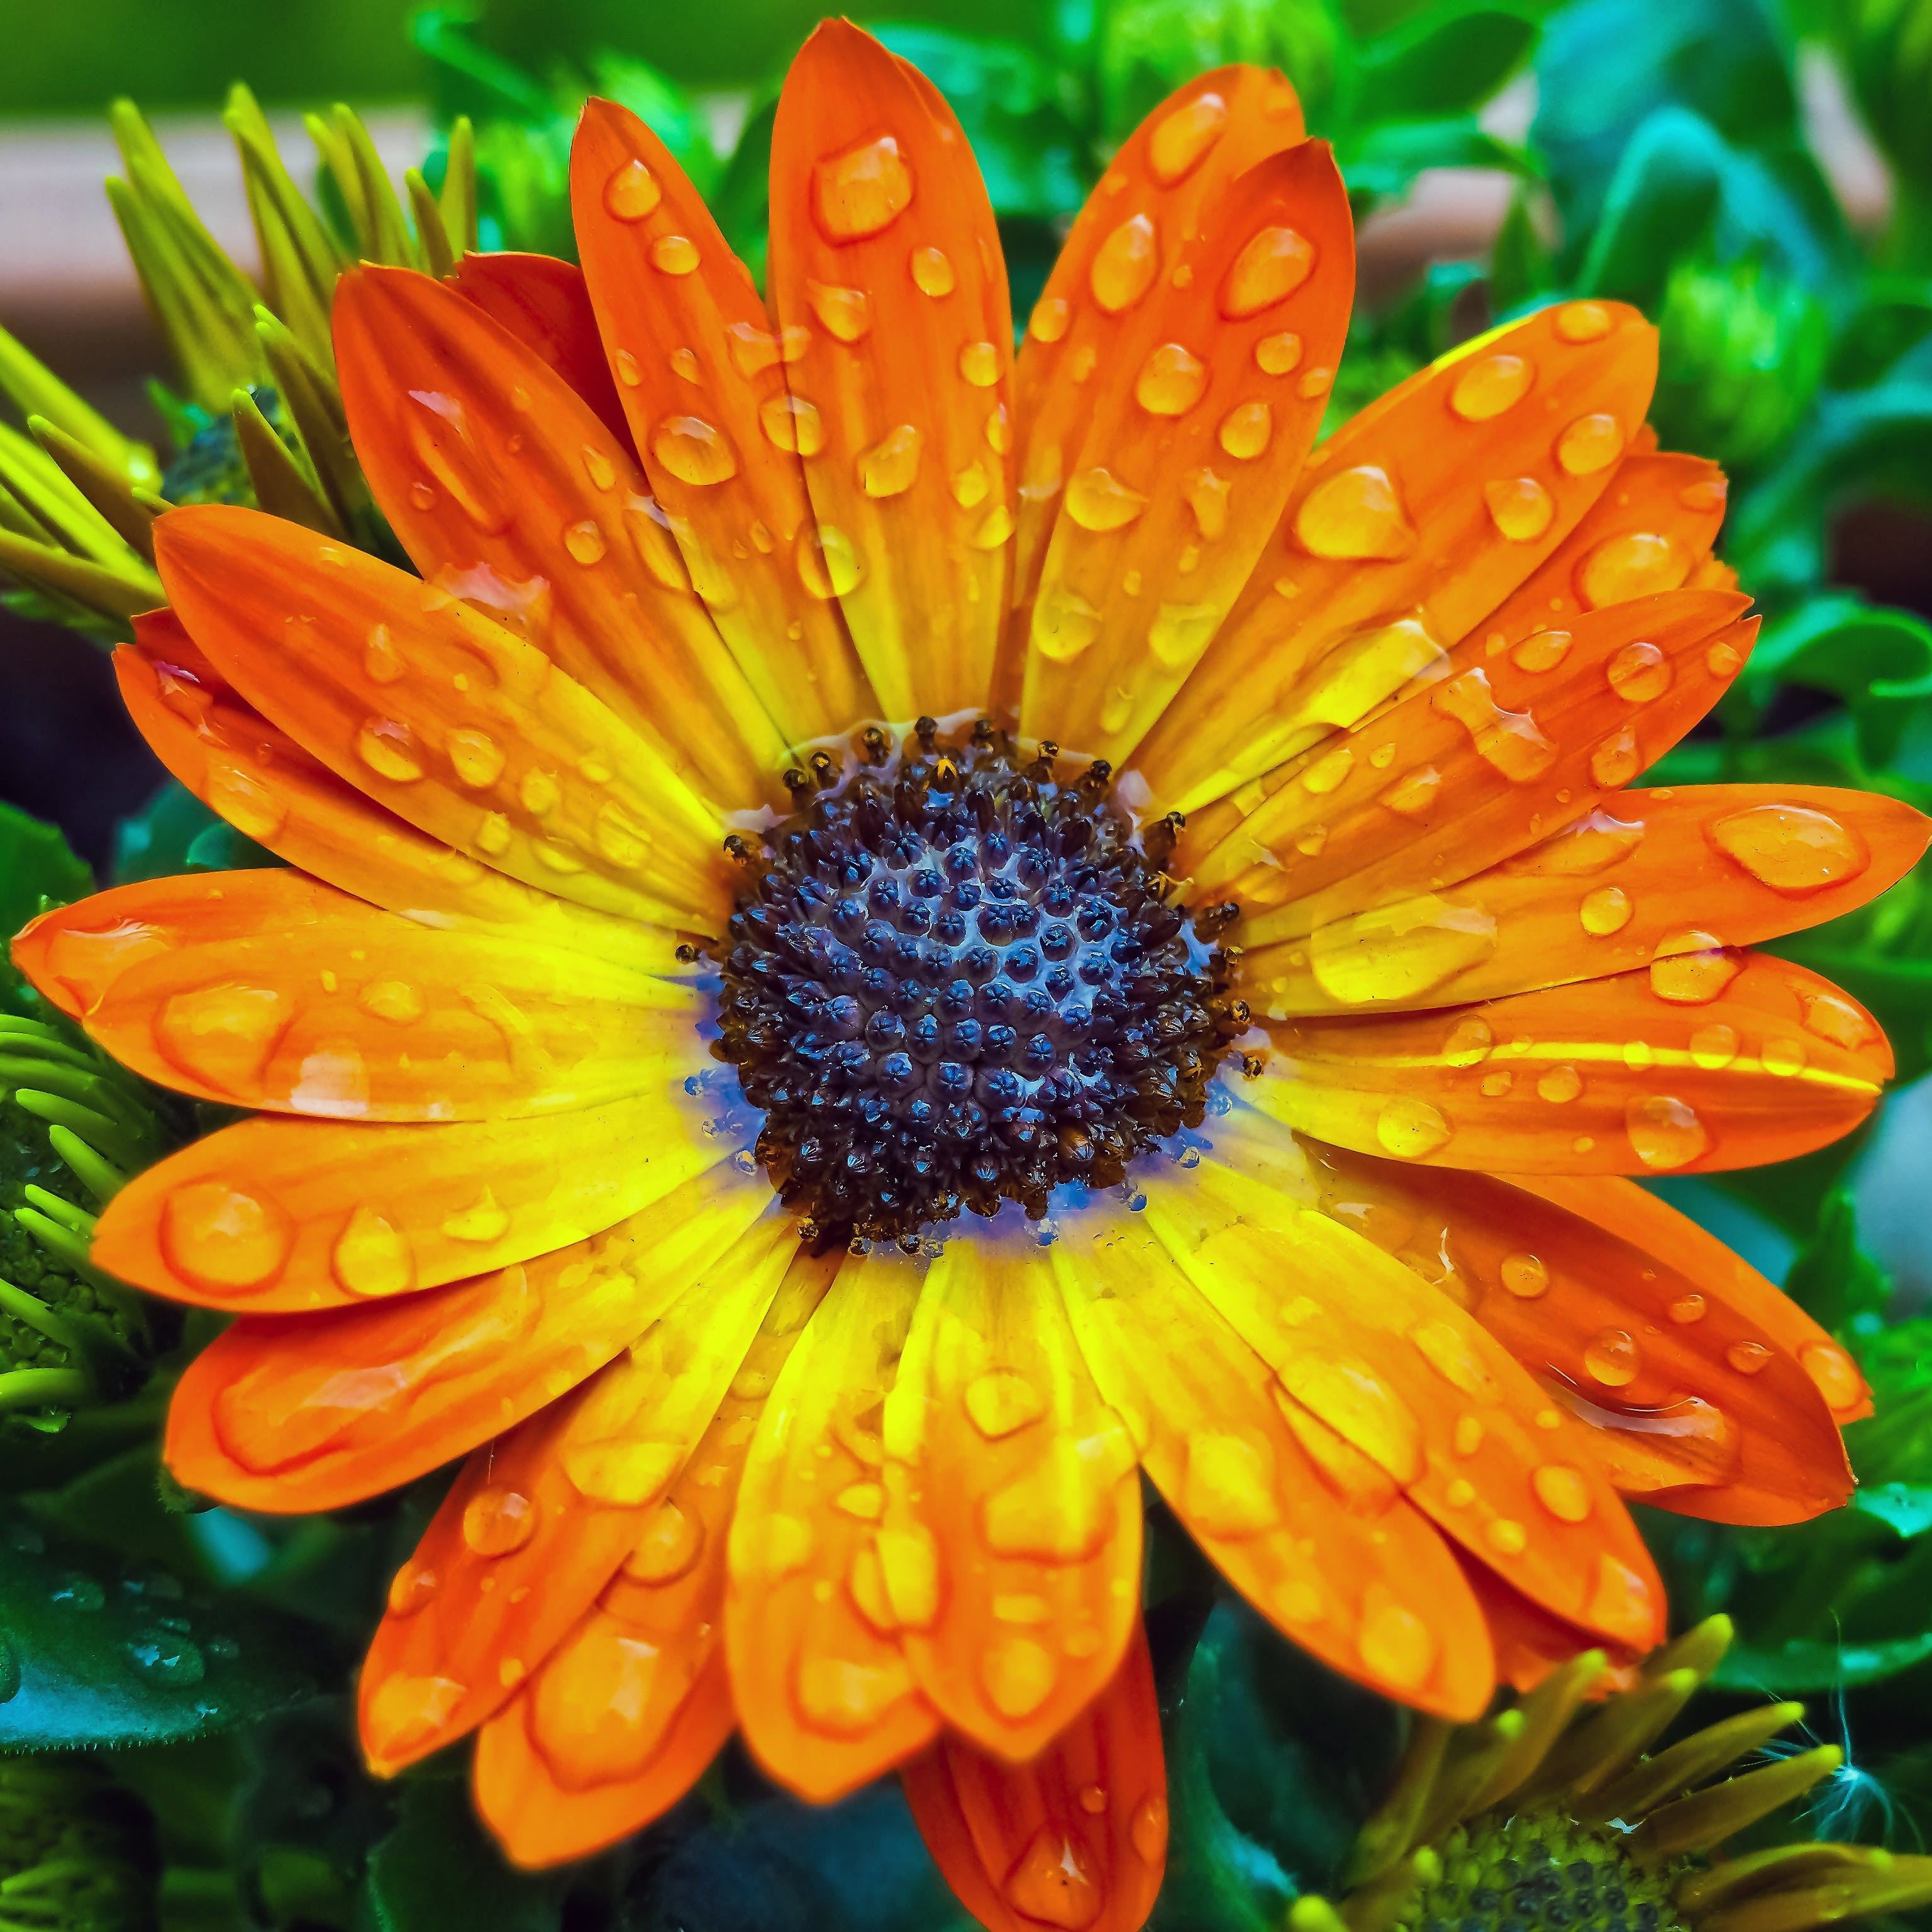 Orange African Daisy Flower in Close-up Photography